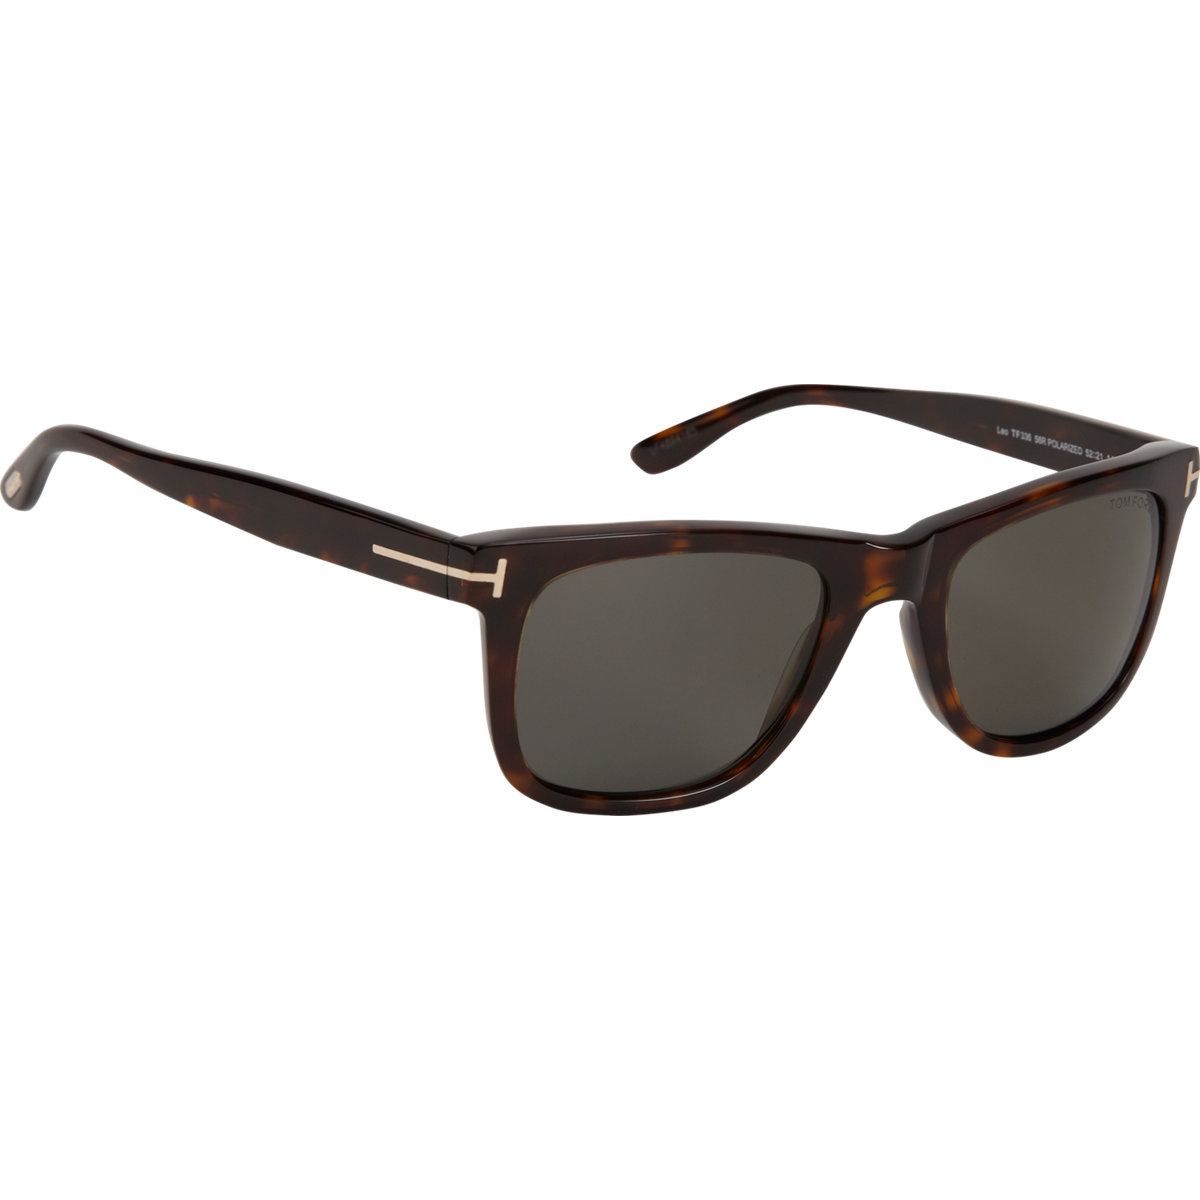 d33827be91 Lyst - Tom Ford Leo Sunglasses in Brown for Men